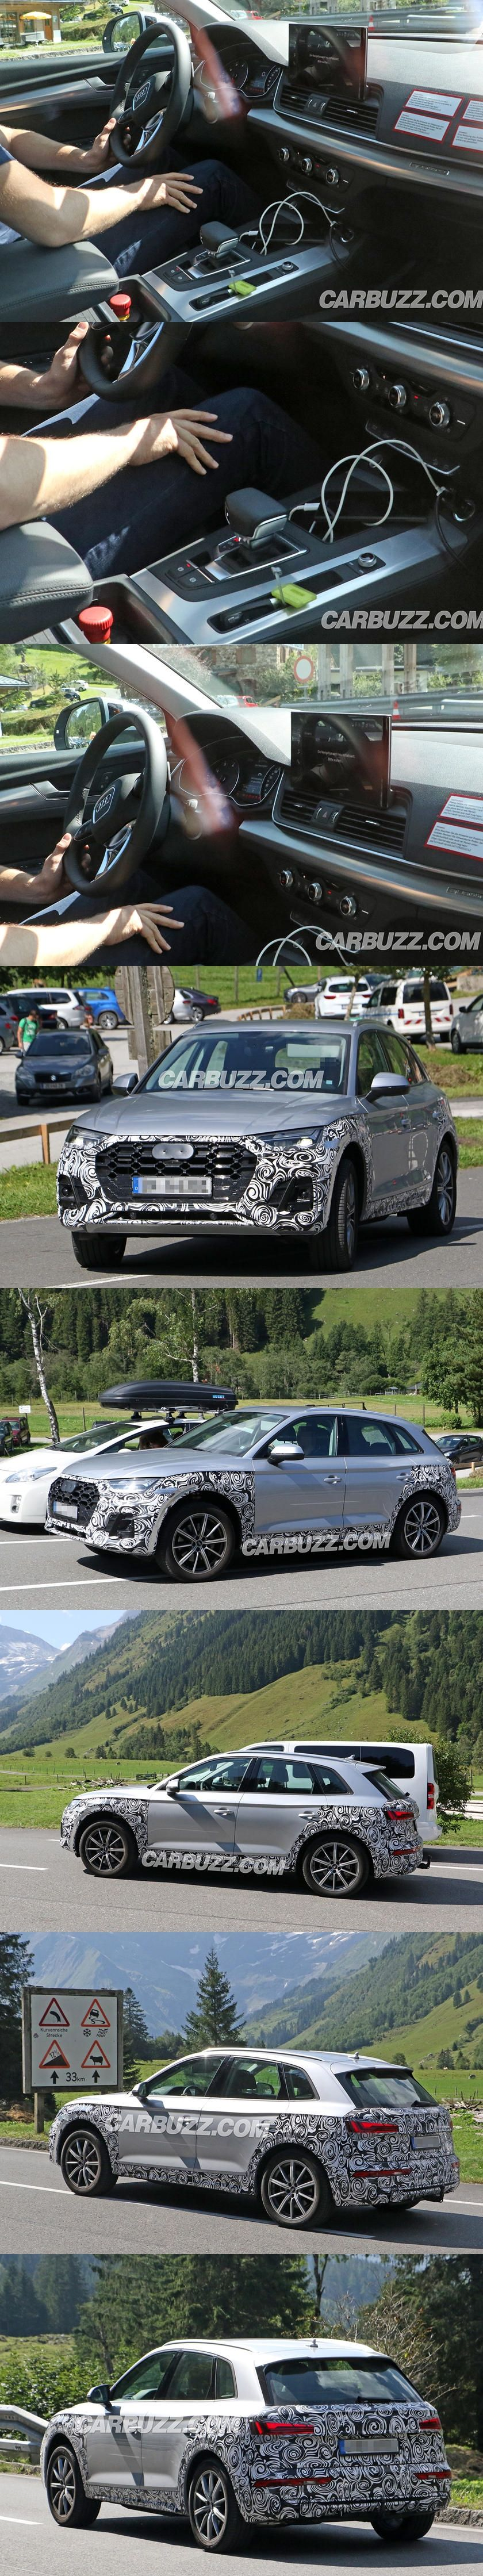 Take A First Look Inside The 2020 Audi Q5s Improved Interior The Facelifted Q5s Interior Gains Some Fancy New Tech Audi Q5 Hybrid Audi Q5